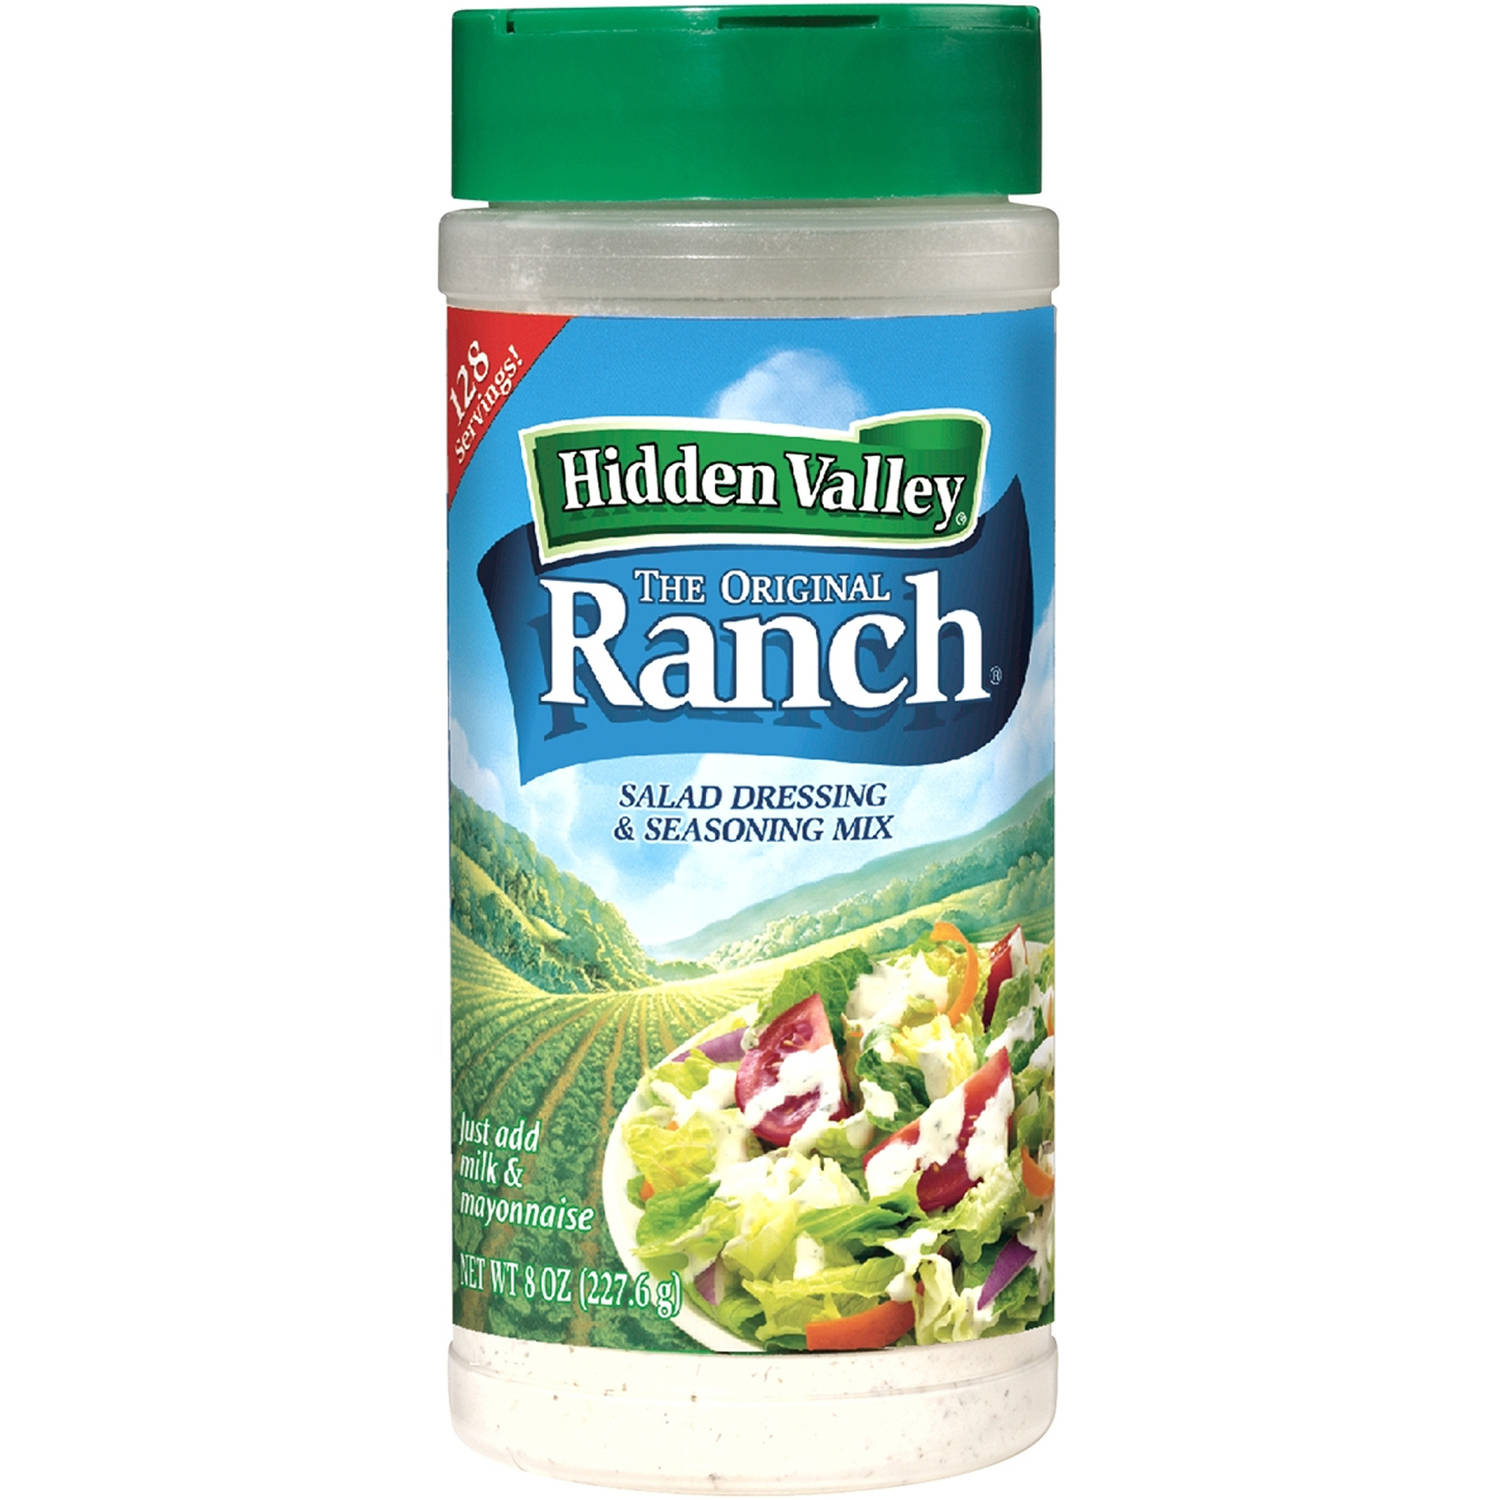 Hidden Valley Original Ranch Seasoning and Salad Dressing Mix, 8 Ounces